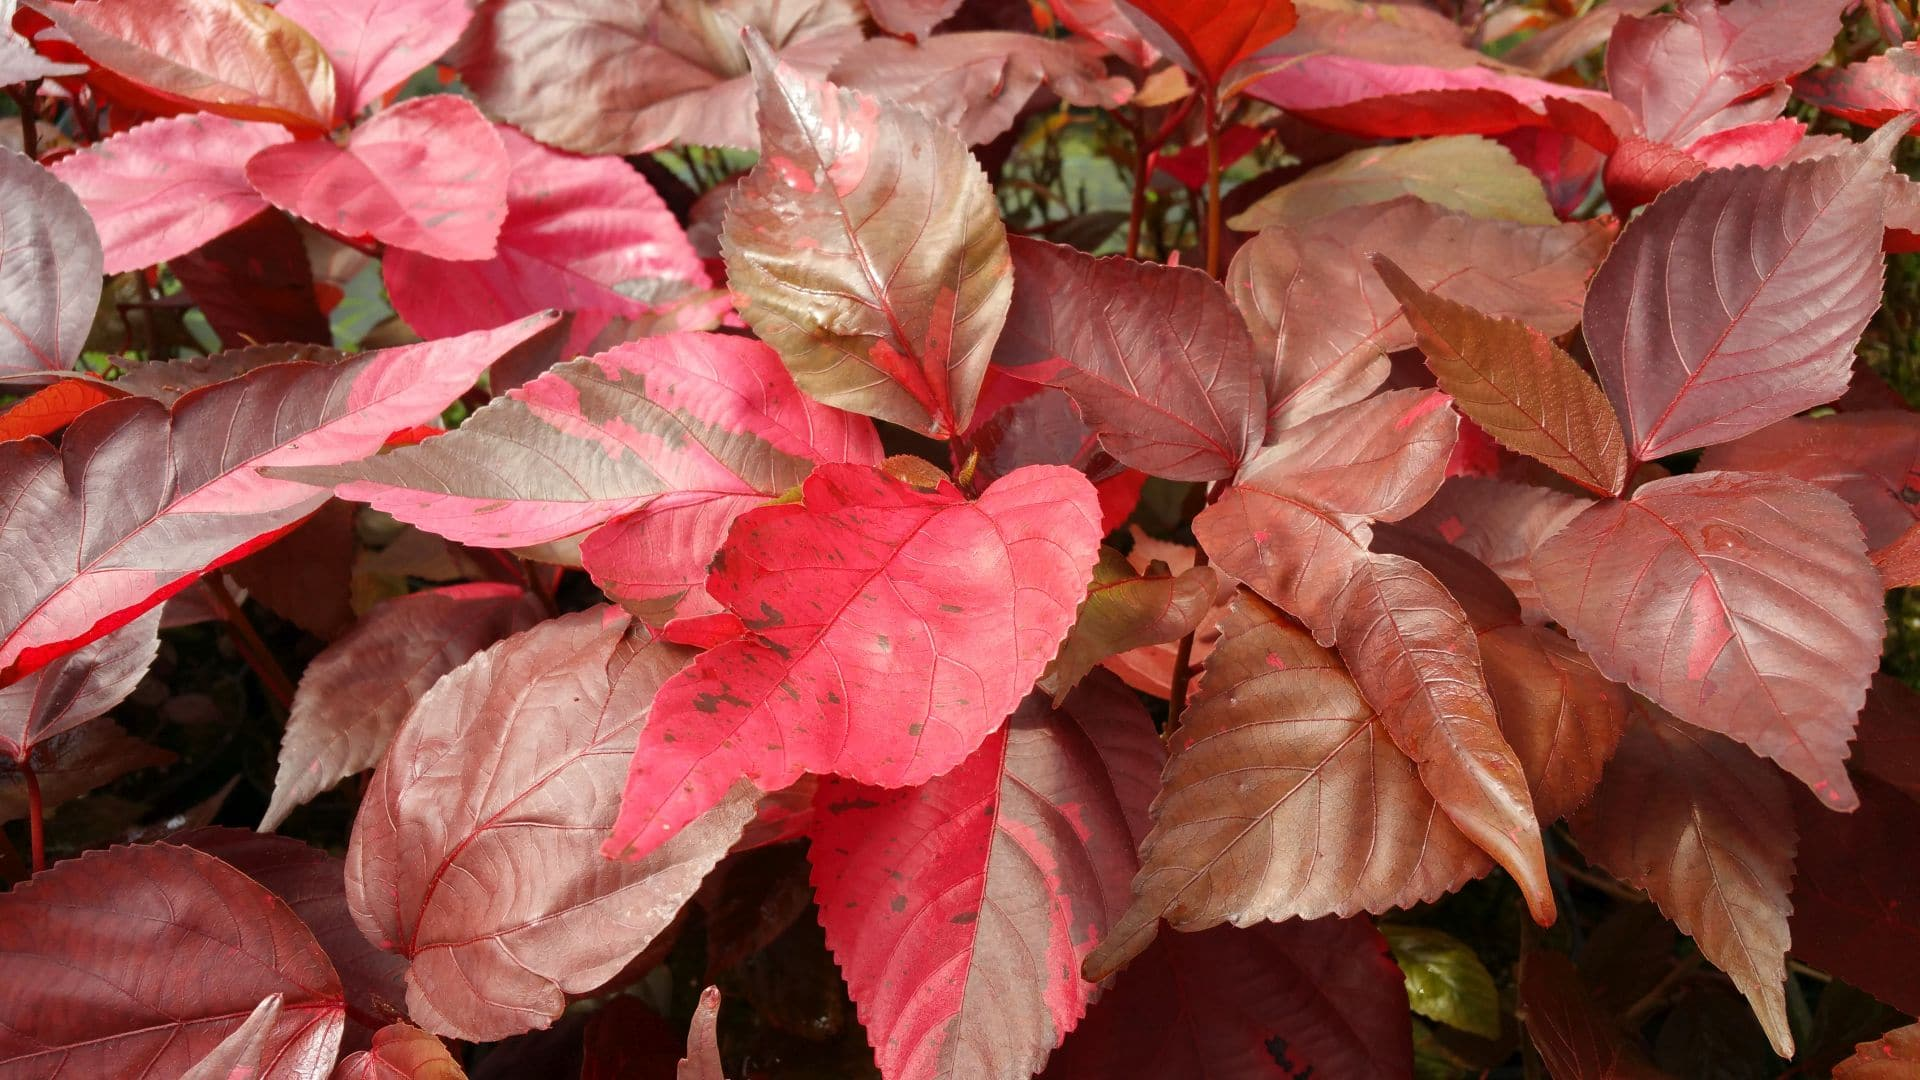 Red copperleaf offers red and brown variegated leaves.